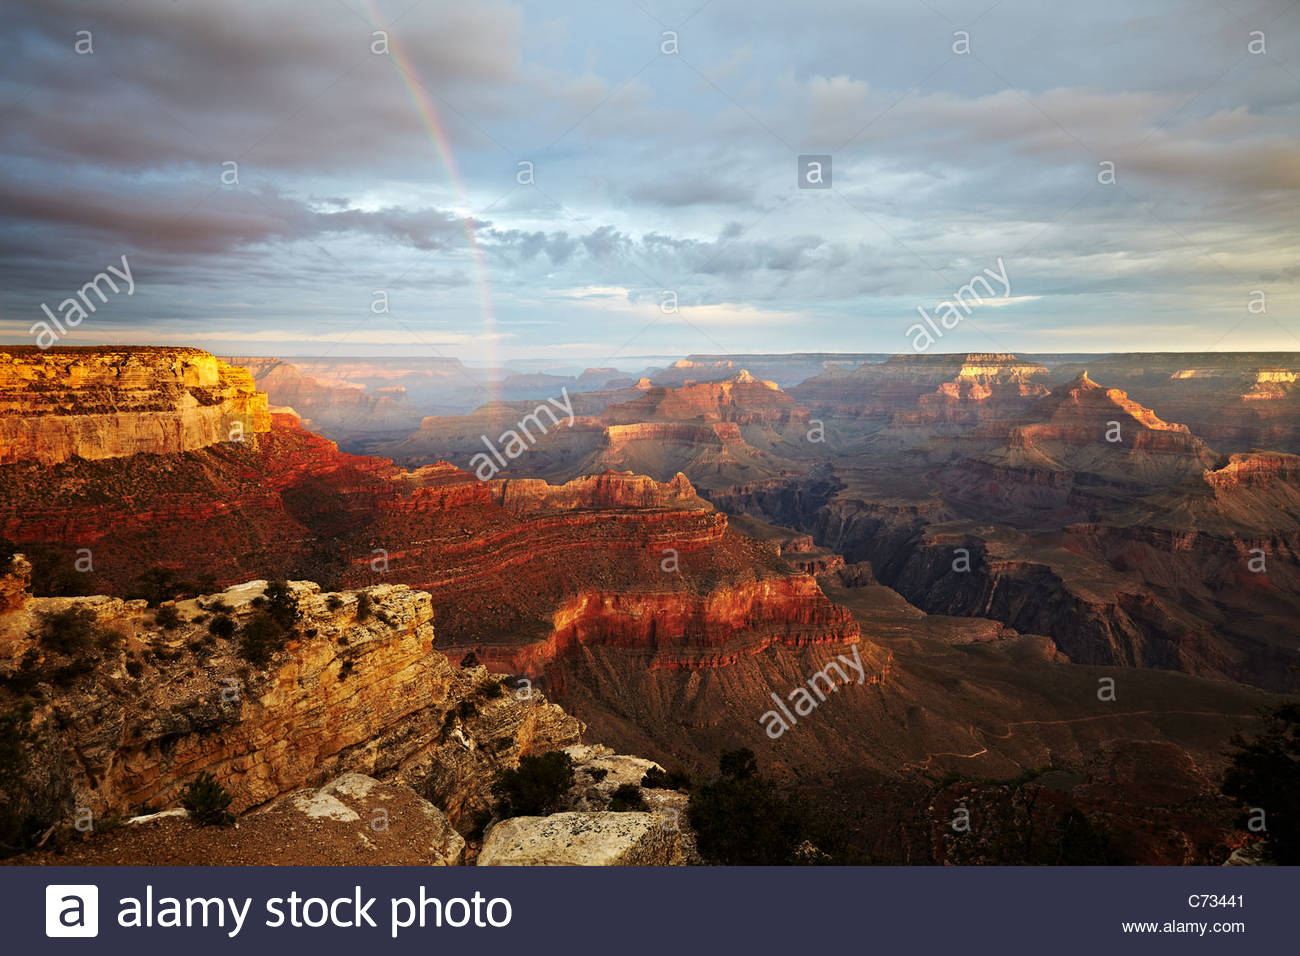 Le lever du soleil, la lumière du matin et rainbow à travers le Grand Canyon, Arizona, USA Banque D'Images